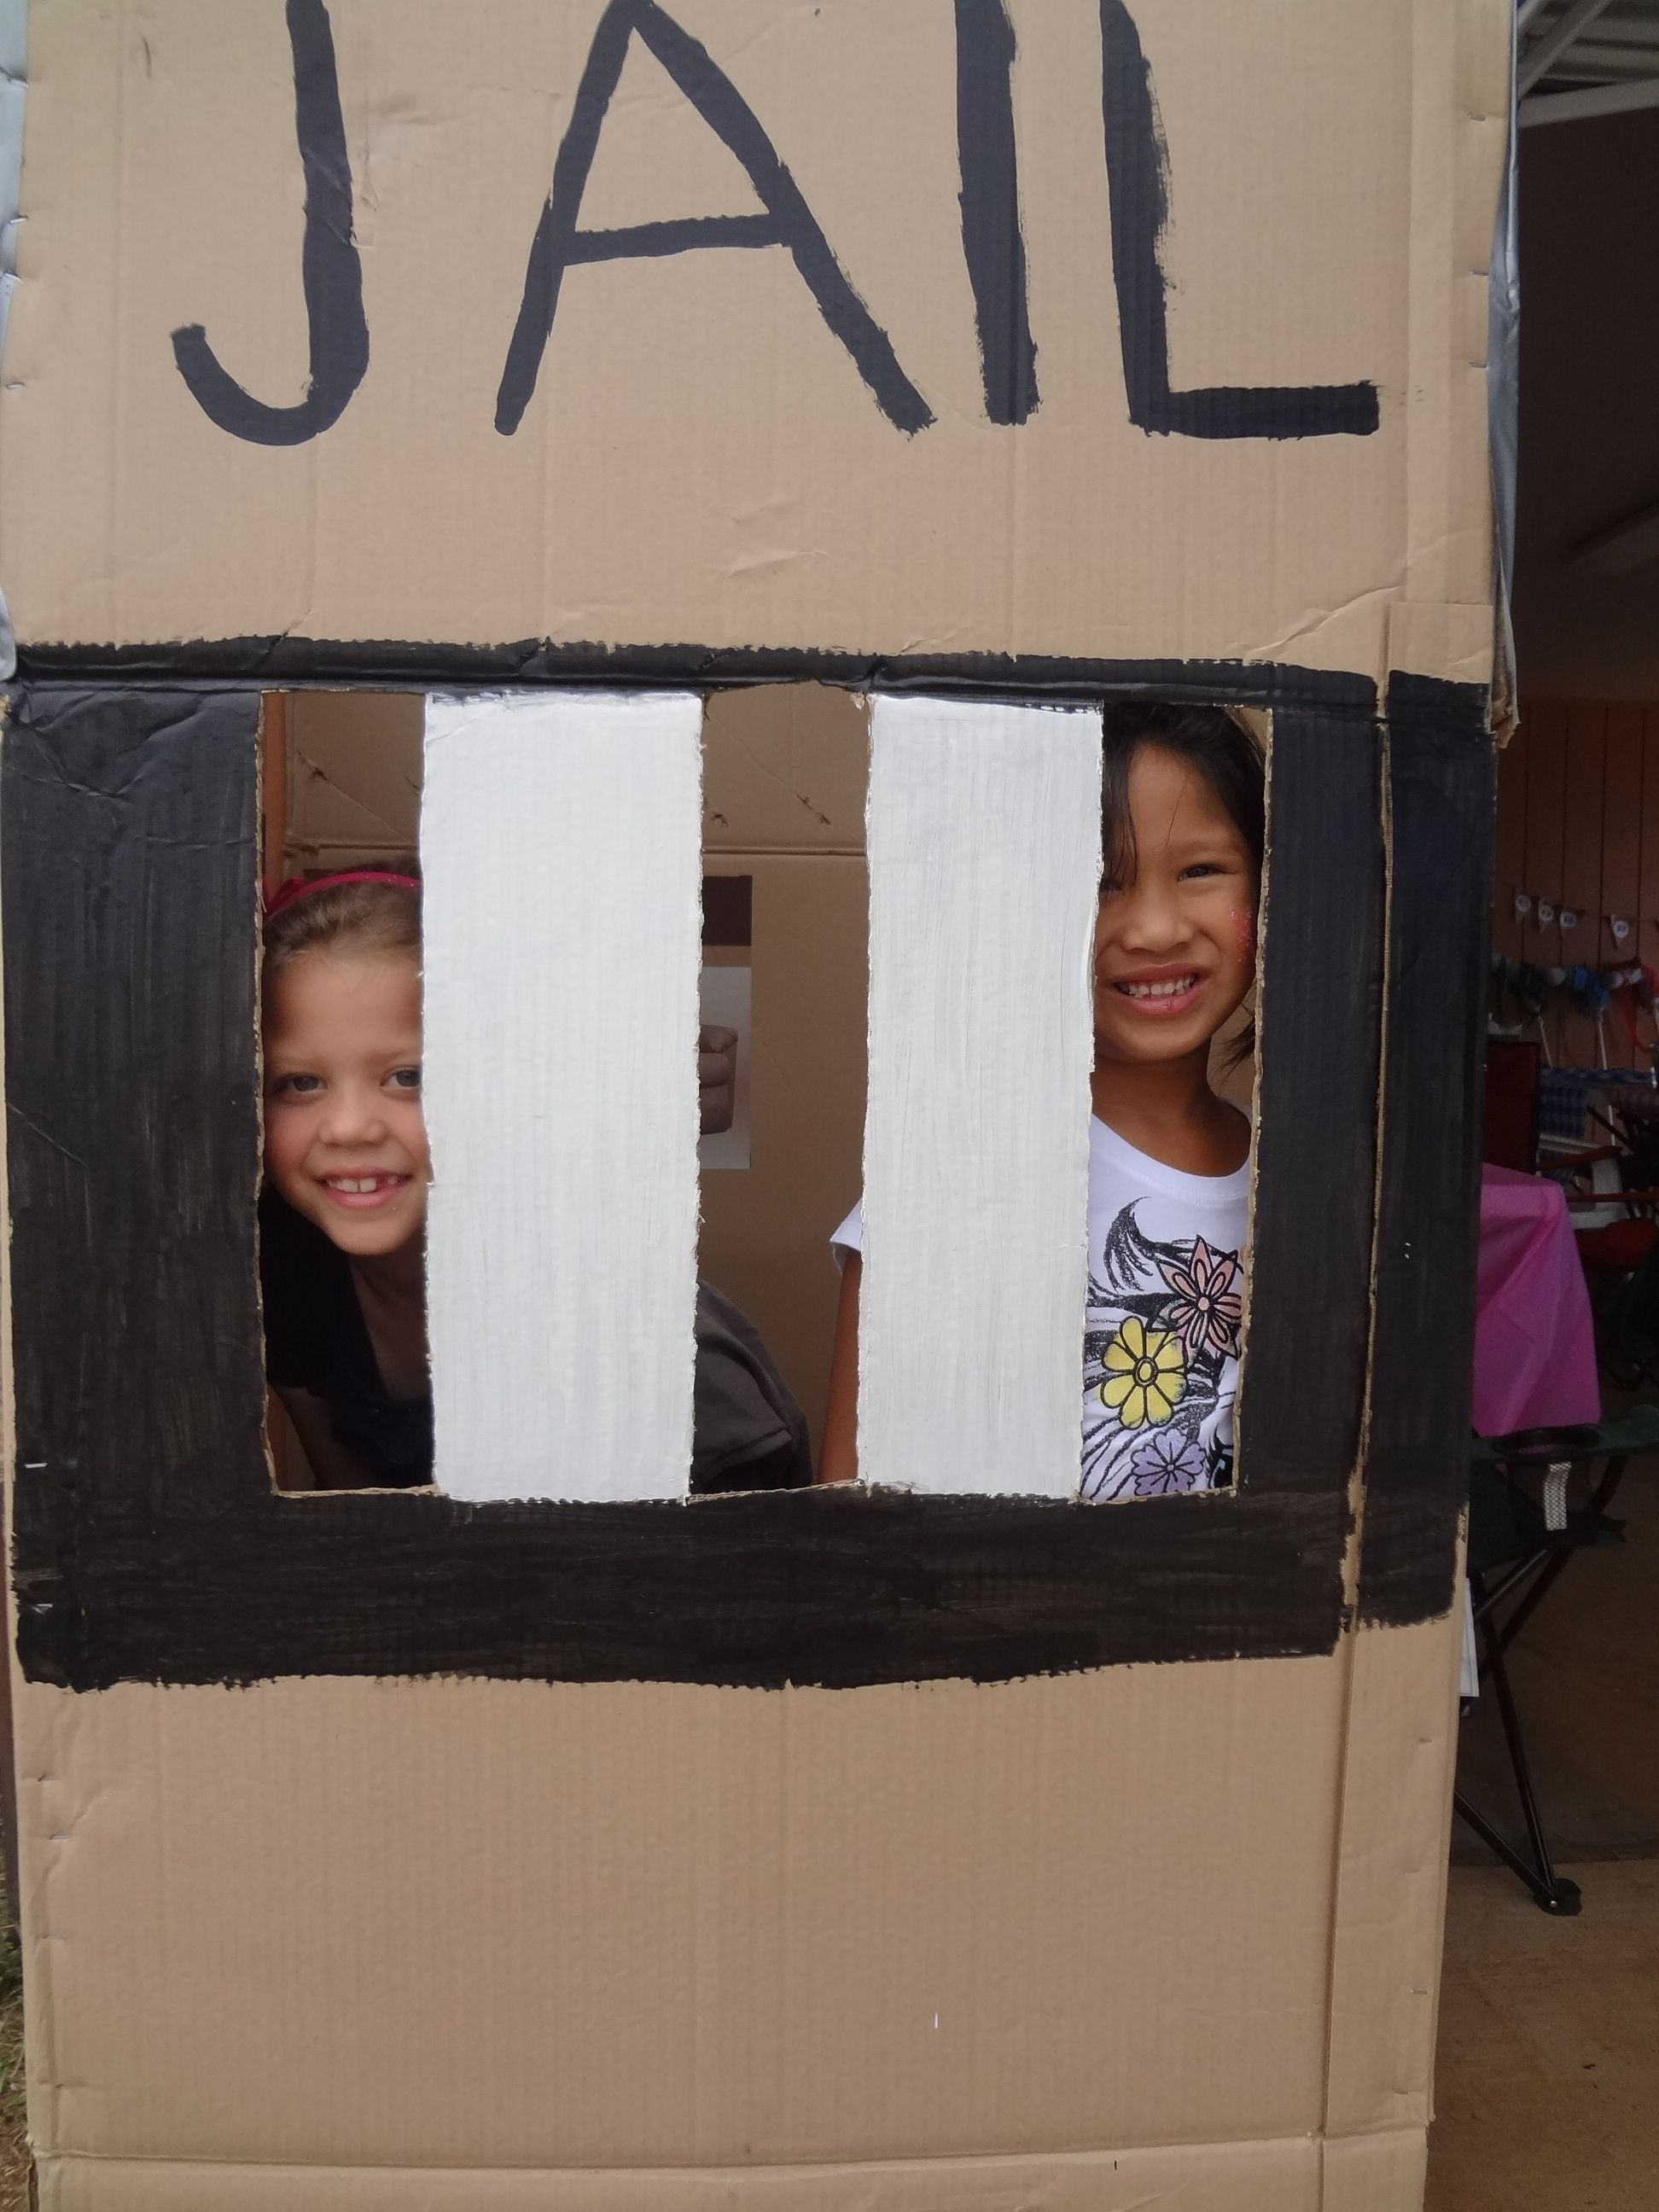 how to make a cardboard jail cell